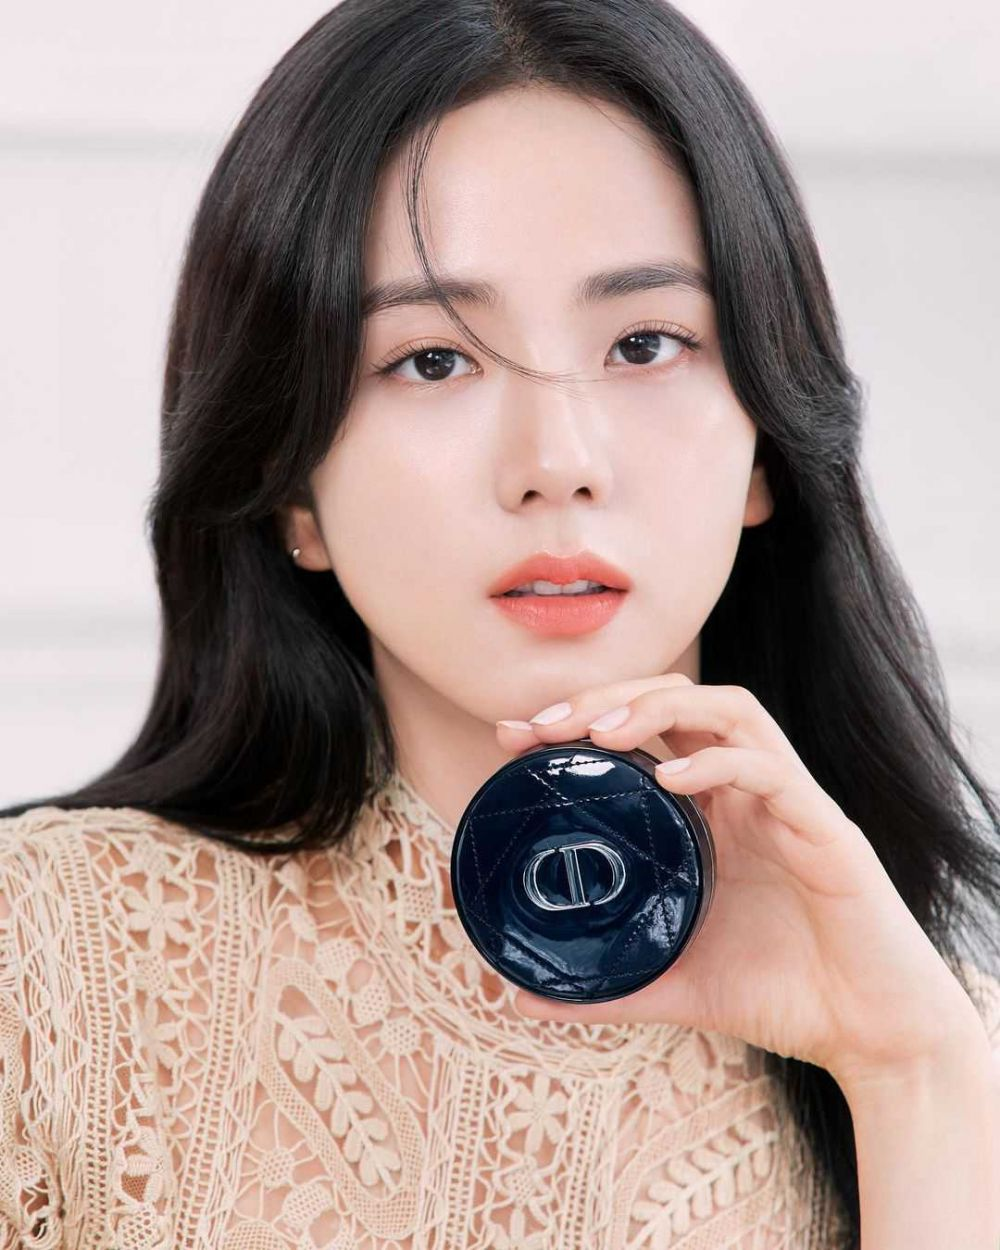 Resmi Jadi Duta Global Dior, 9 Potret Close Up Terbaru Jisoo BLACKPINK